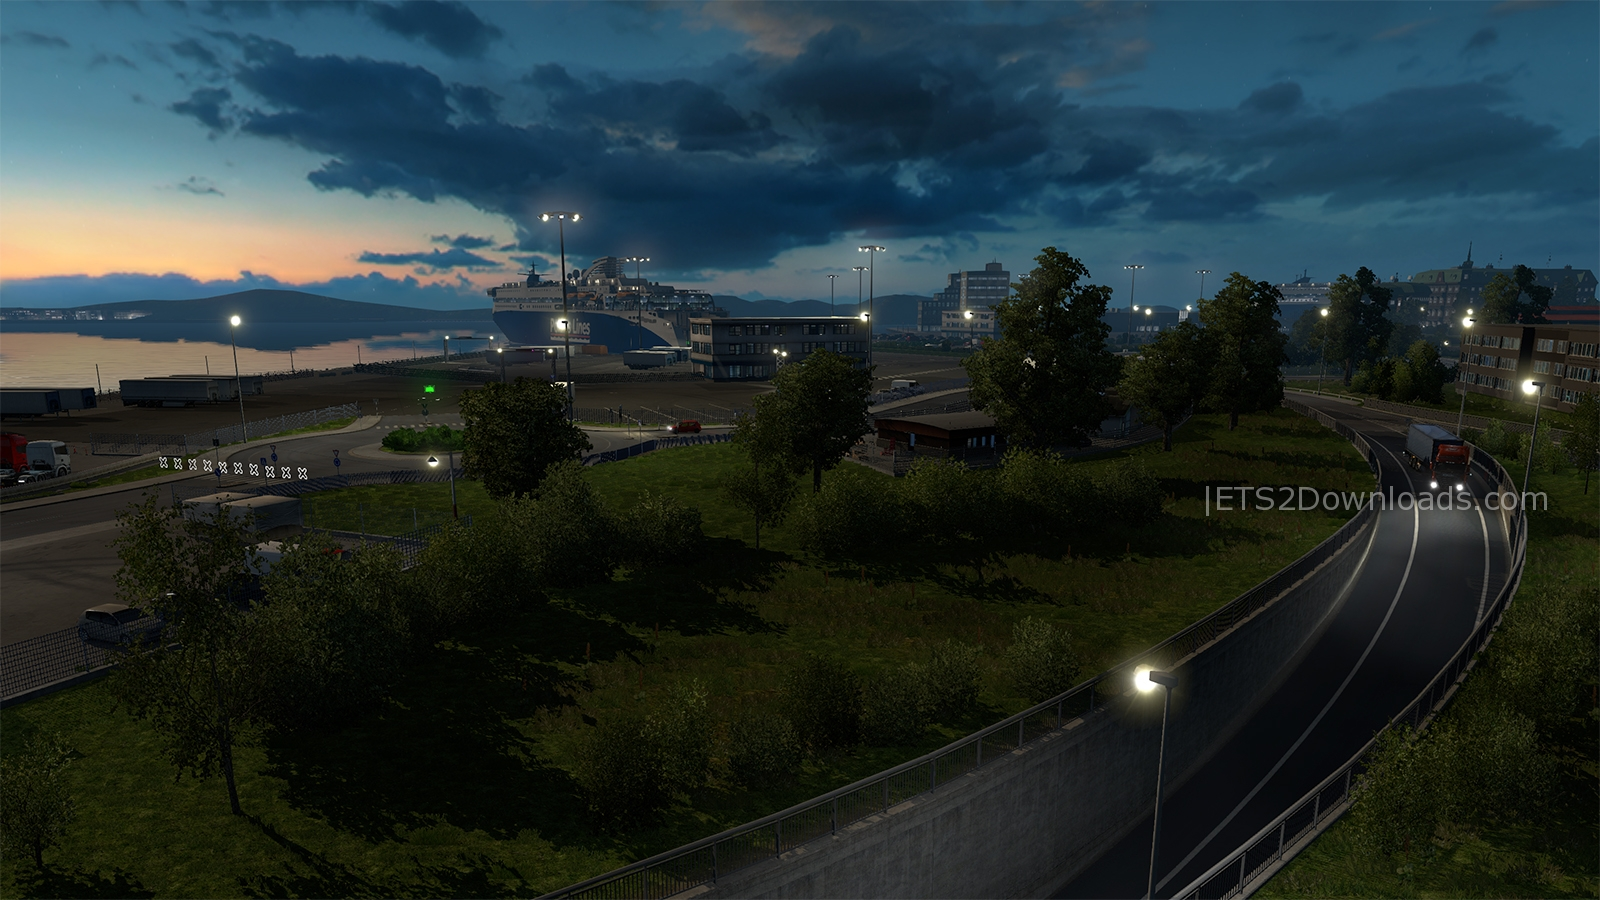 oslo-the-biggest-city-in-scandinavia-dlc-1